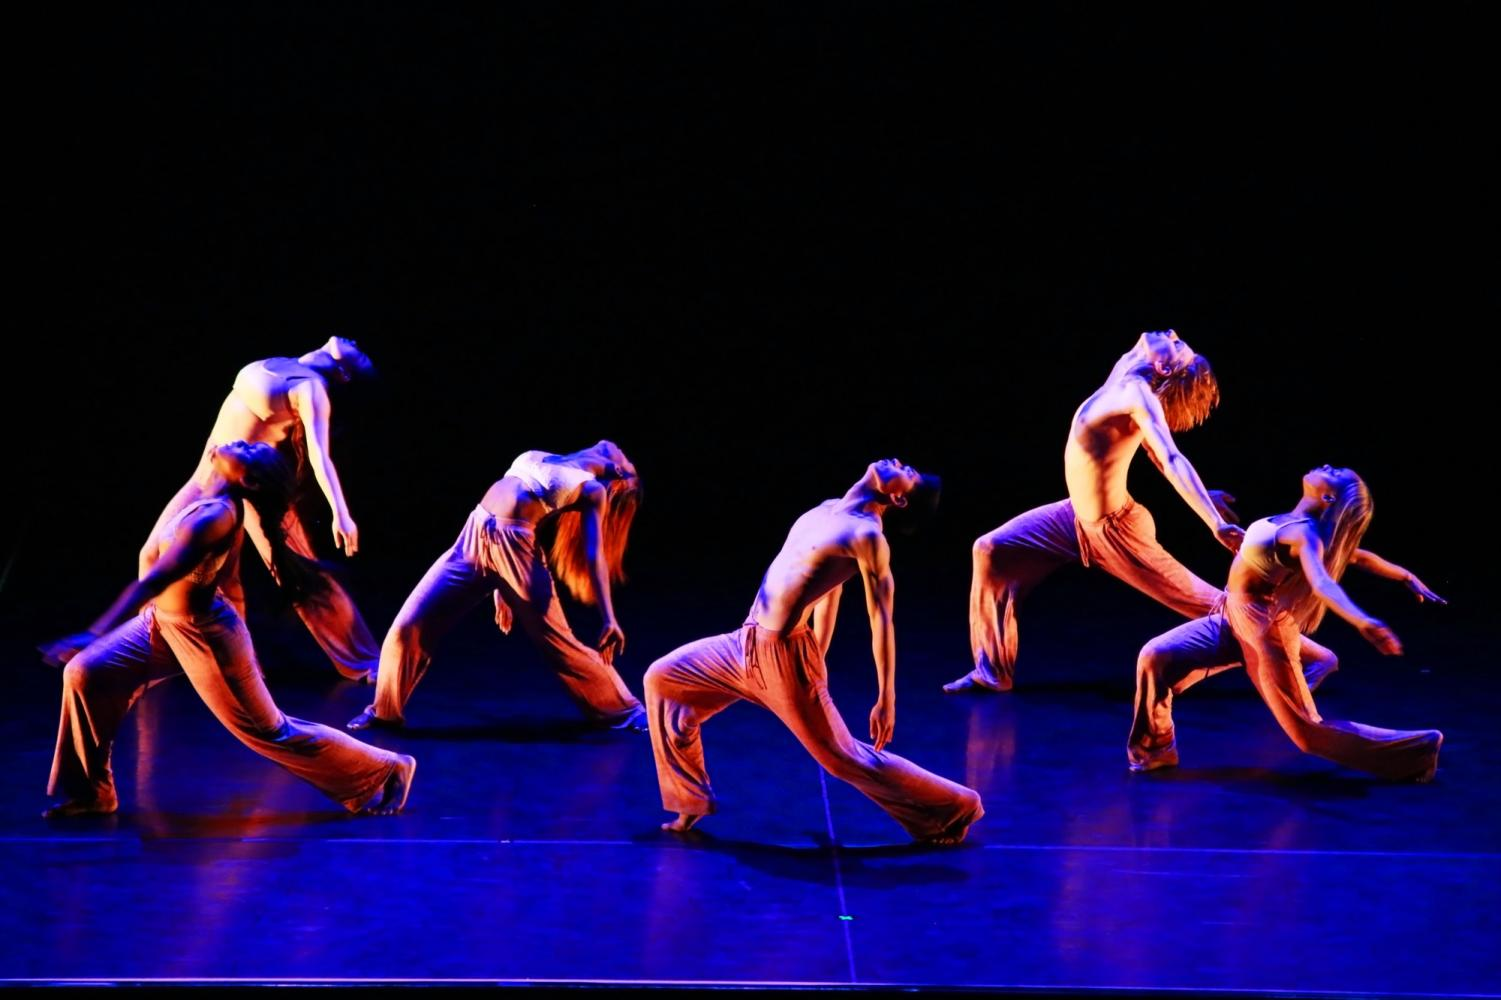 Spring Advanced Dance Concert showcases students' choreography